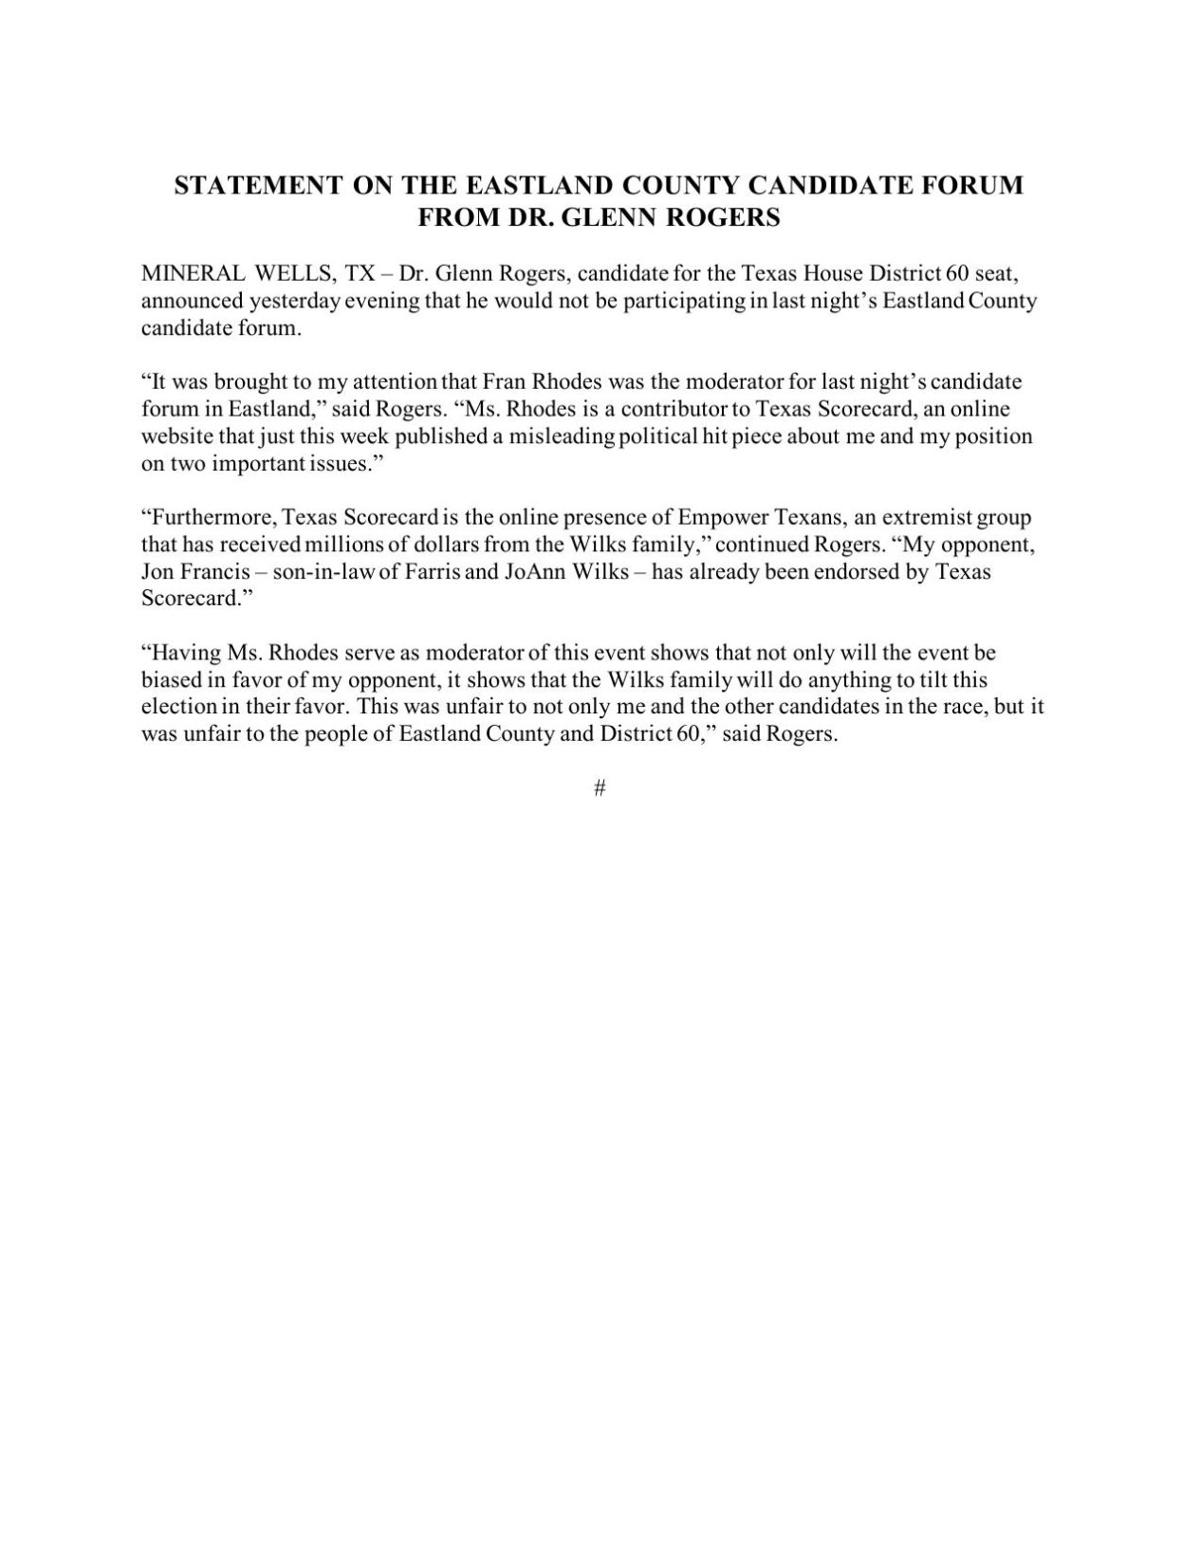 Eastland Candidate Forum Statement From Dr. Glenn Rogers